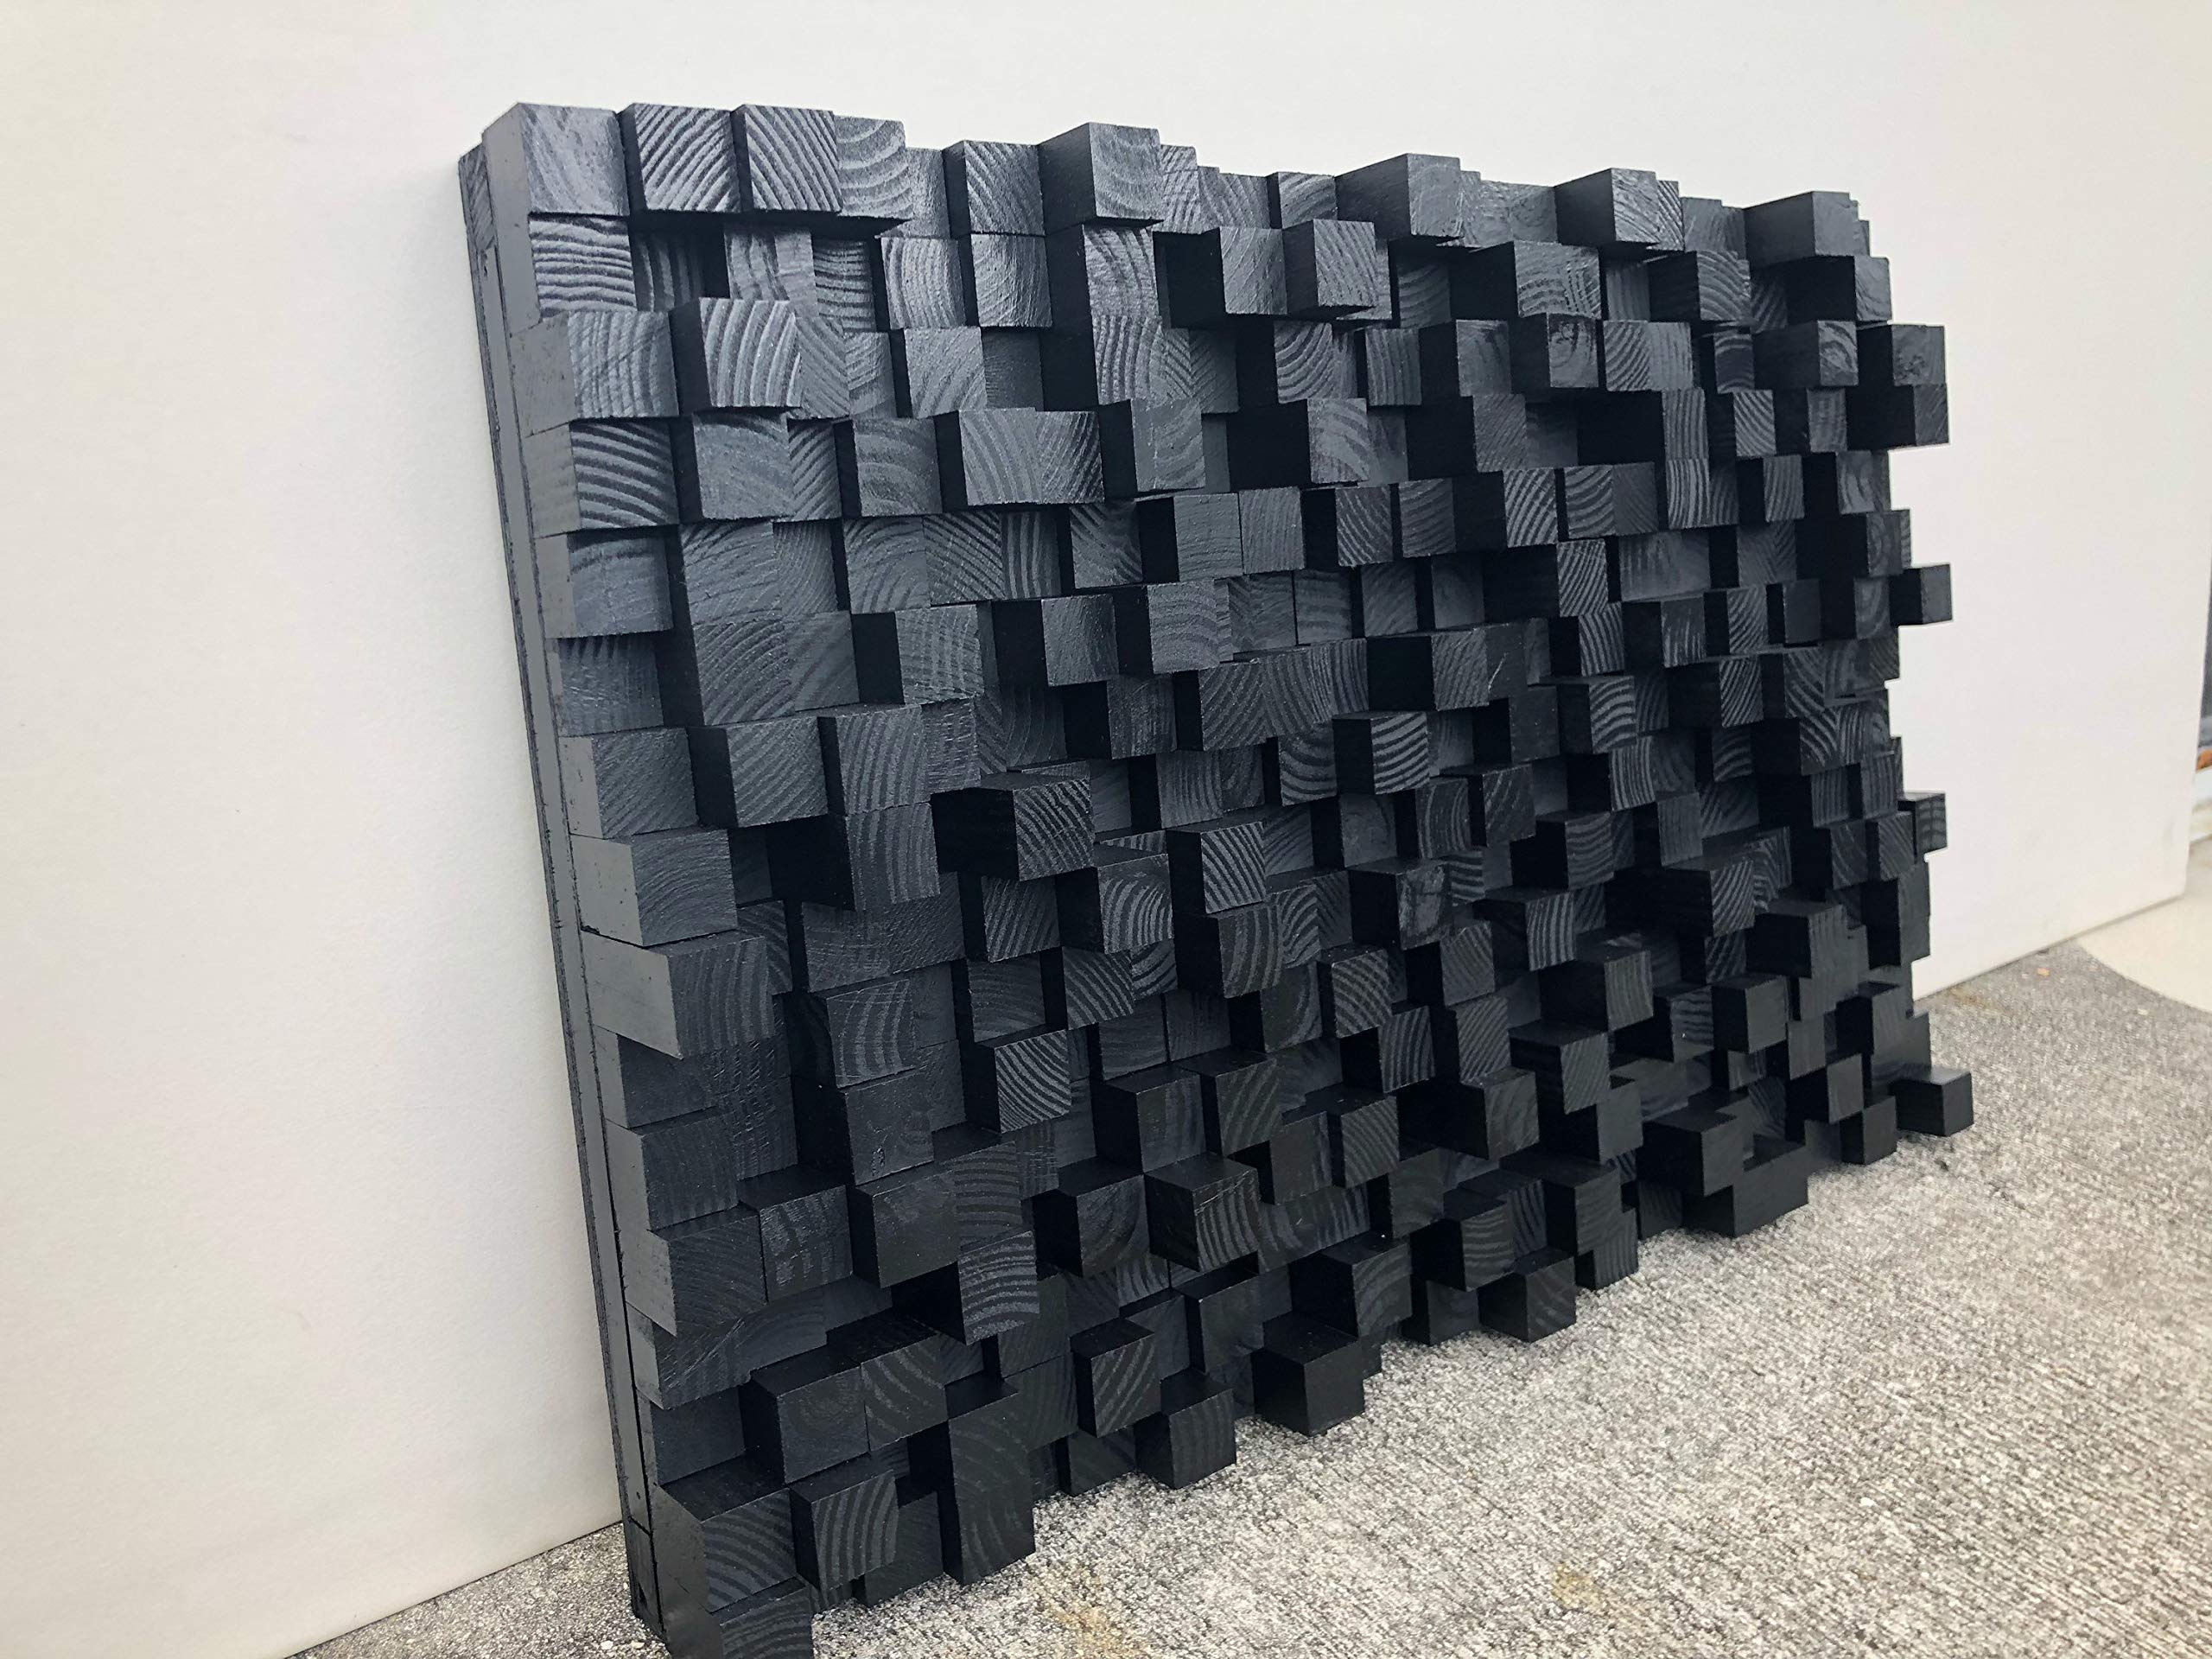 Sound Diffuser - Acoustic Diffusion Panel - Soundproofing - Wood - Wall Art- sound diffusor